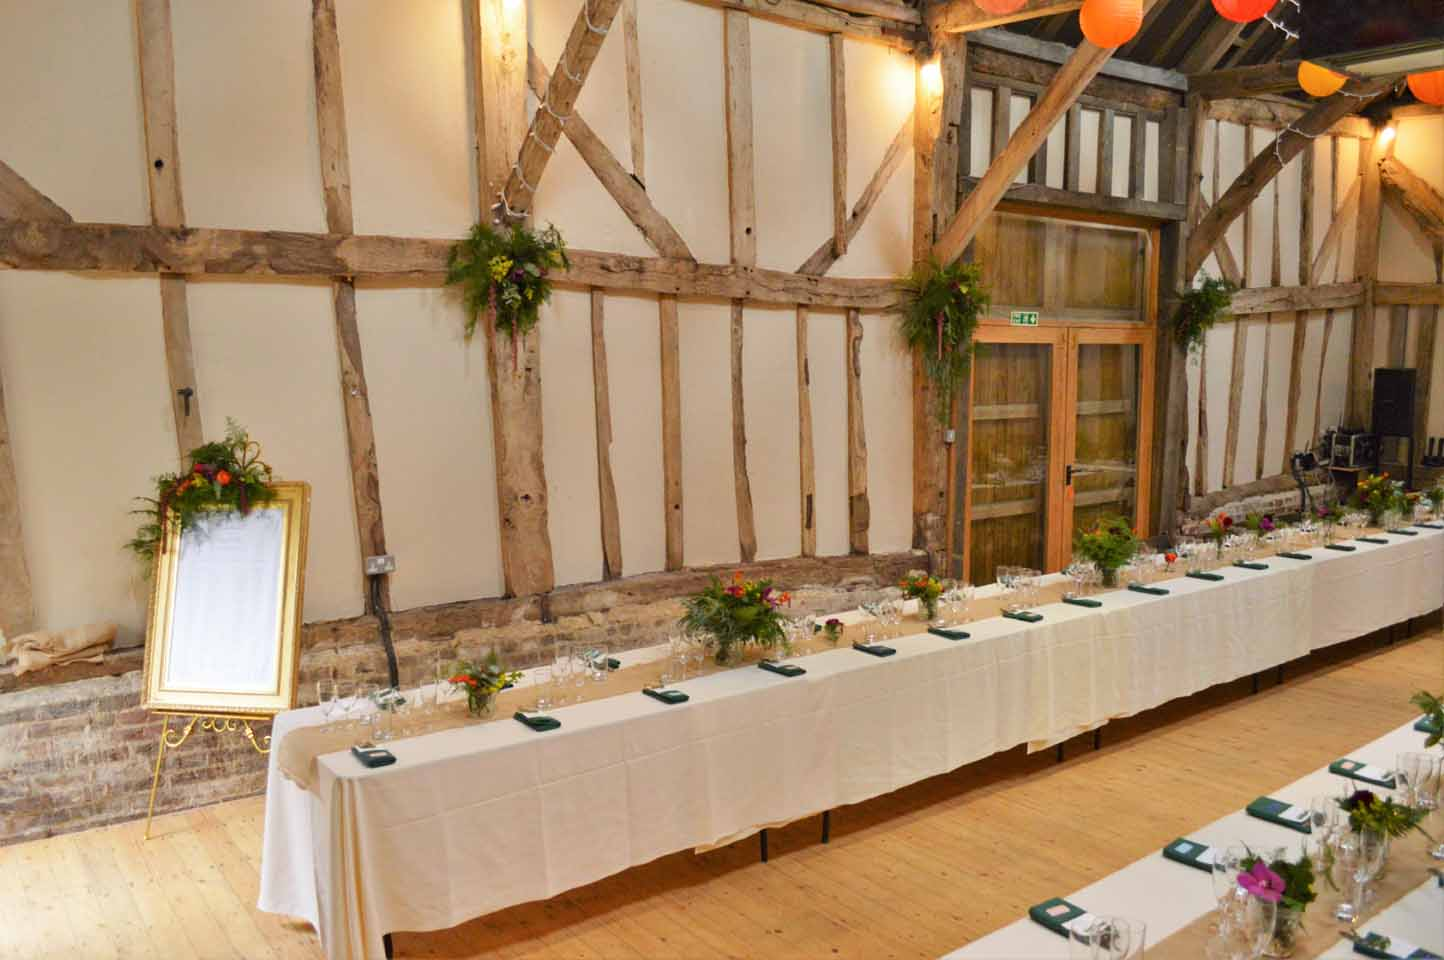 patricks barn wedding set up banquet table